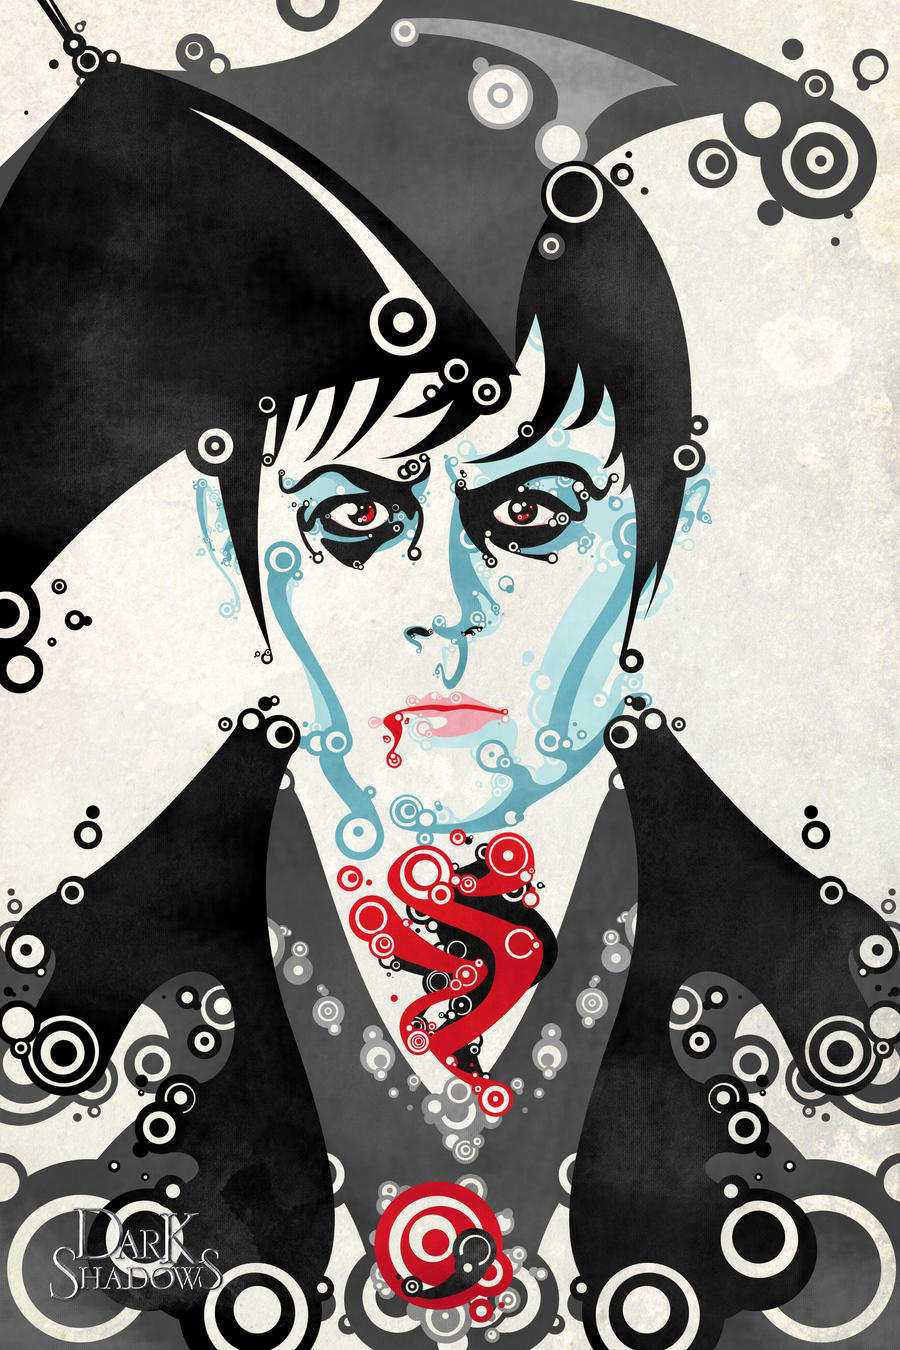 Dark Shadows: Barnabas Collins by LegacyArtist